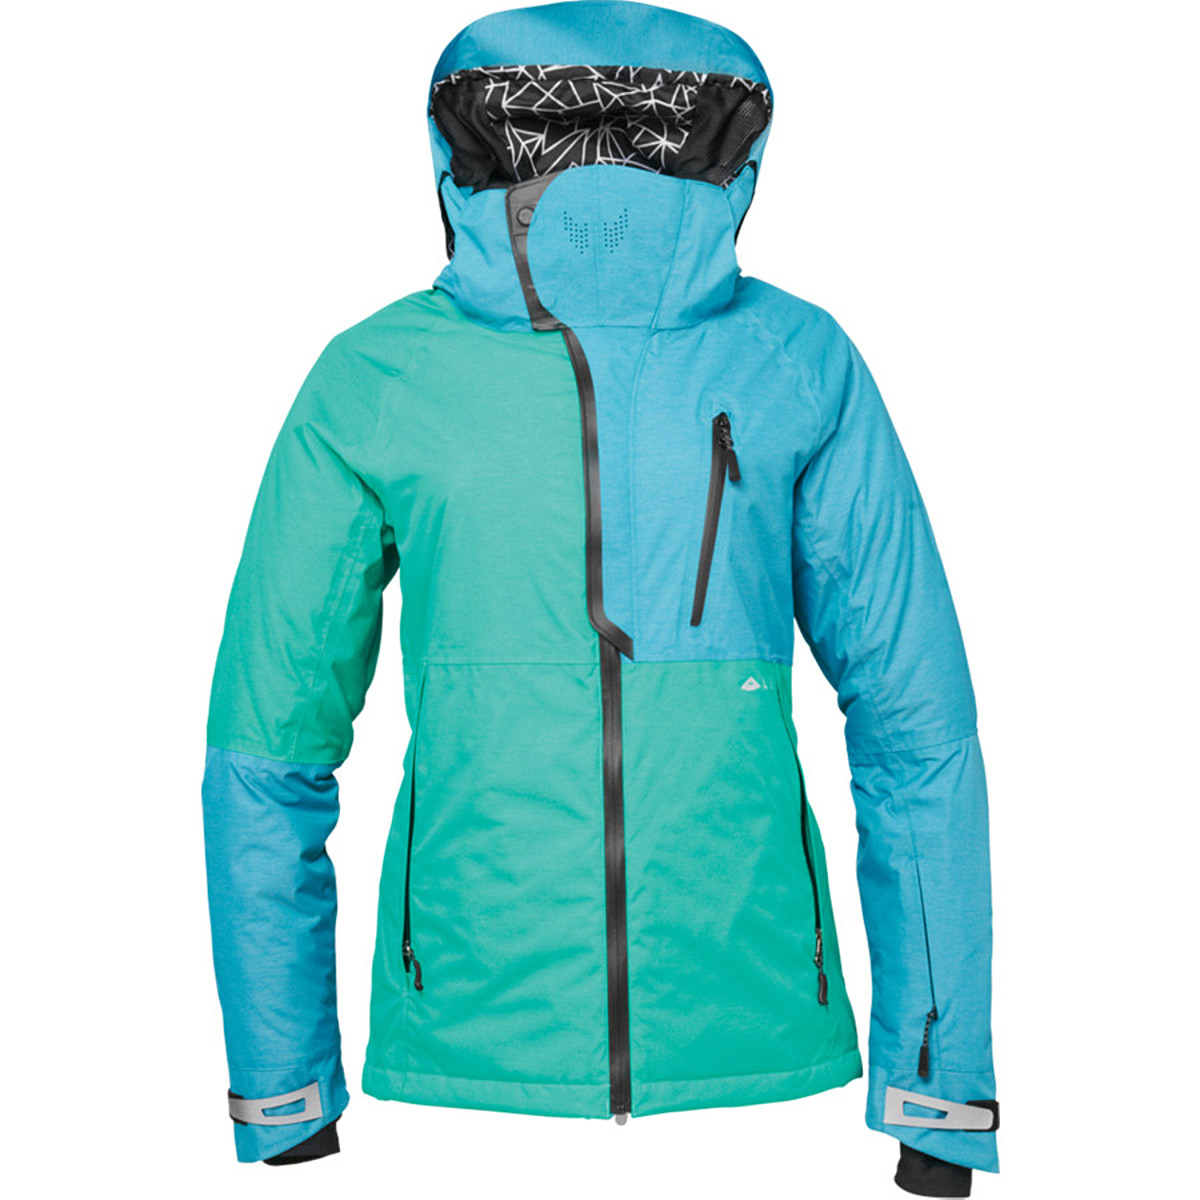 686 GLCR Cirque Thermagraph Jacket